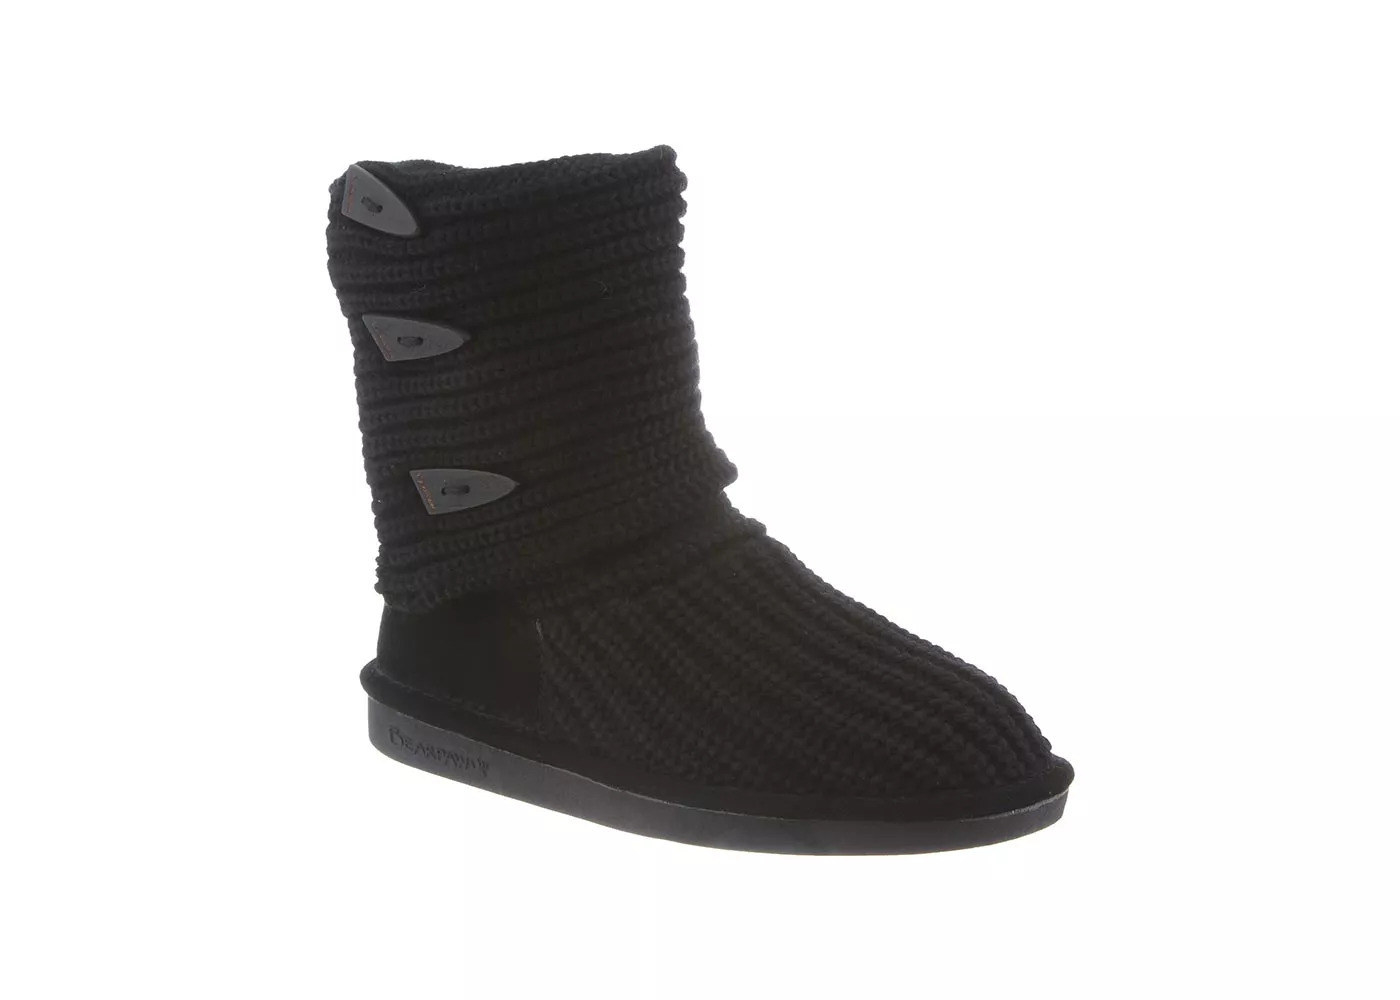 Black knit bootie with plastic tassels on the side